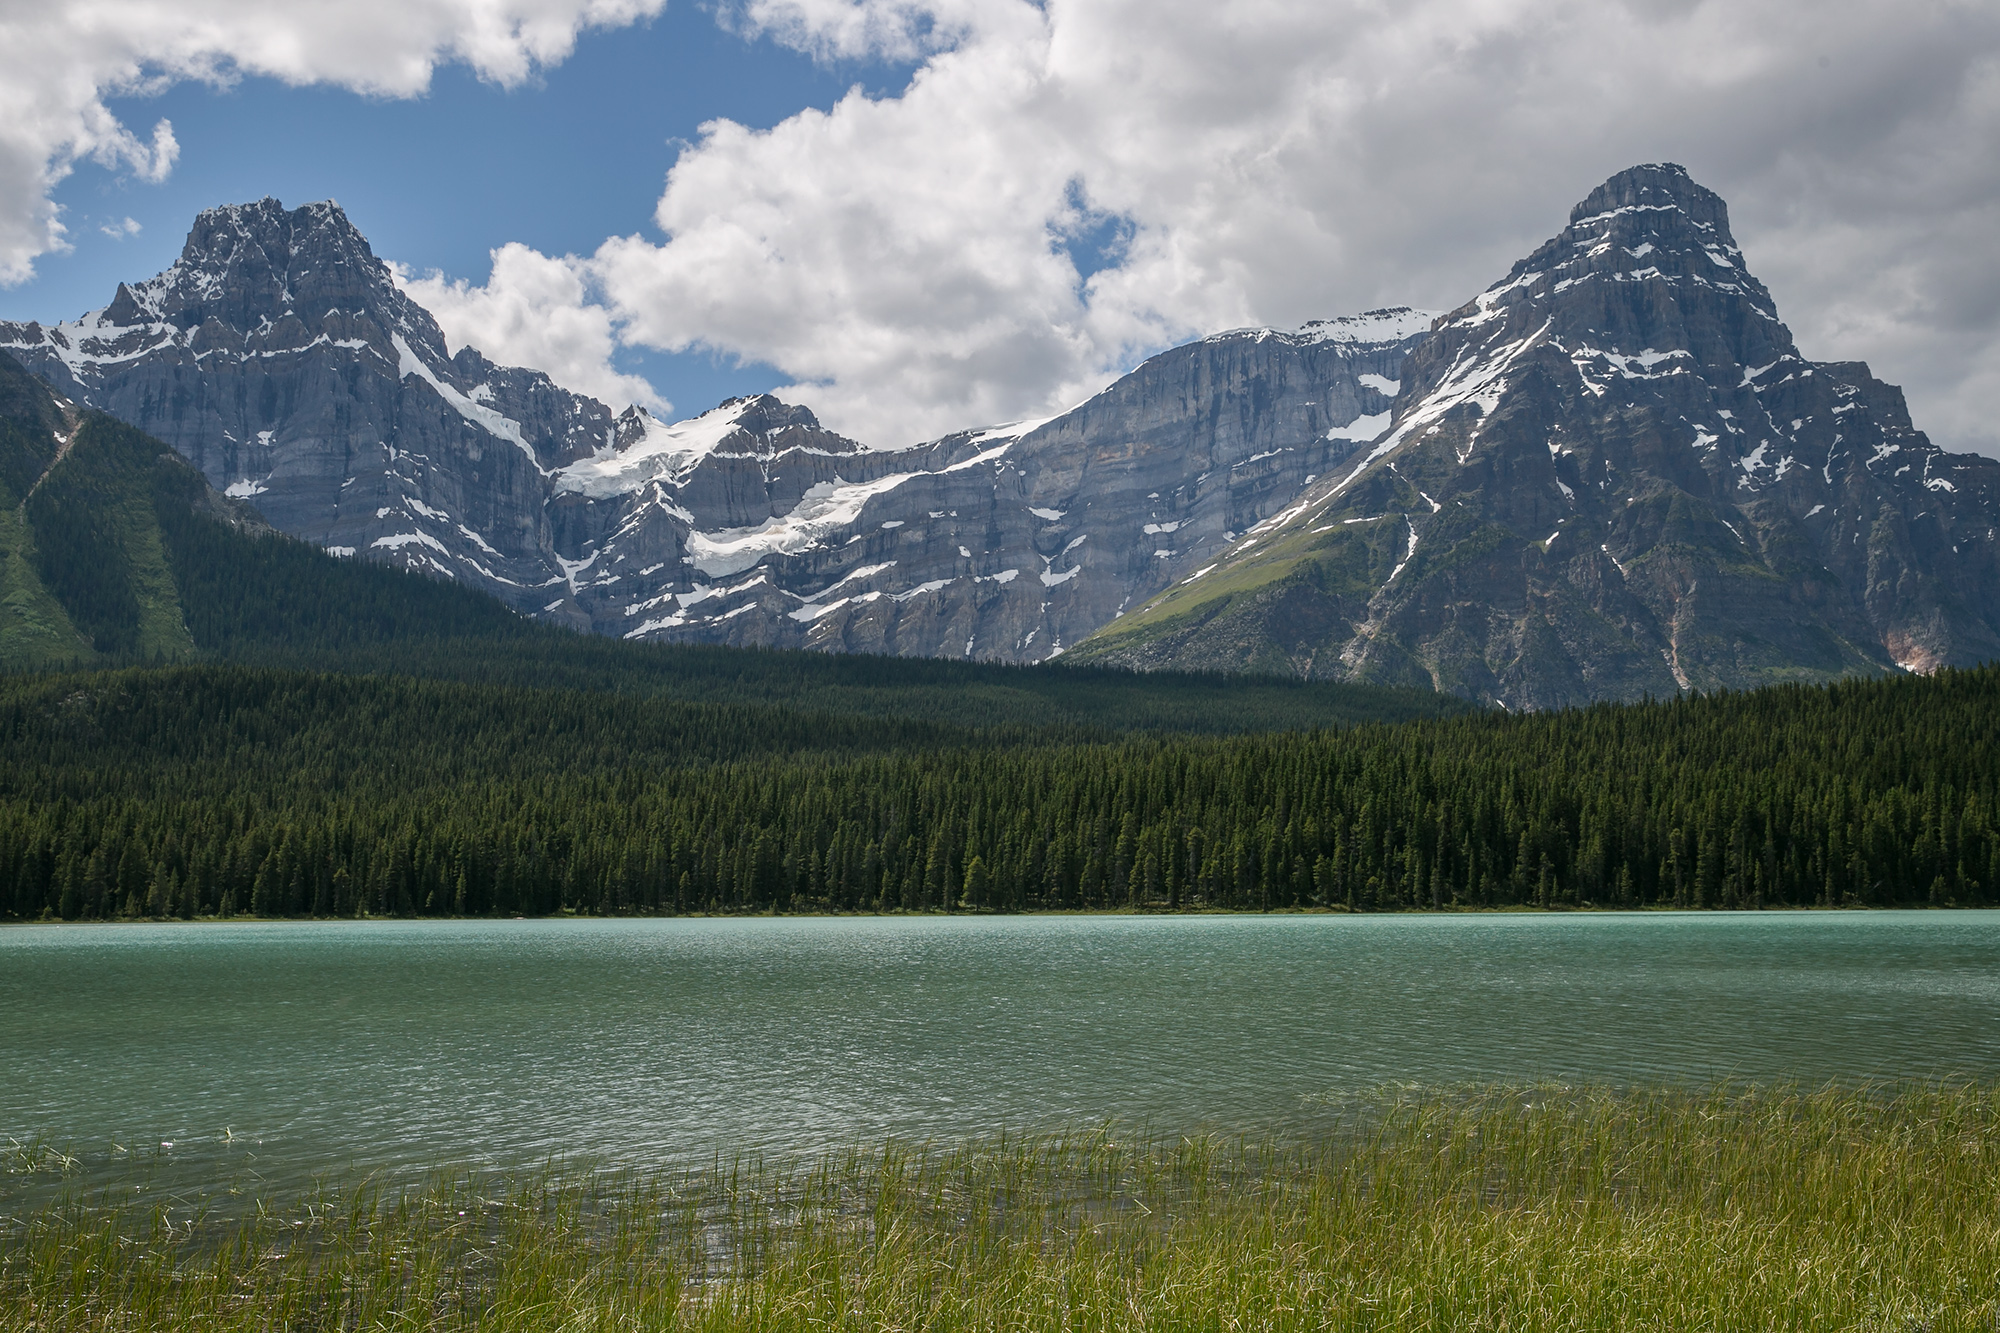 Stunning views along the Icefields Parkway.